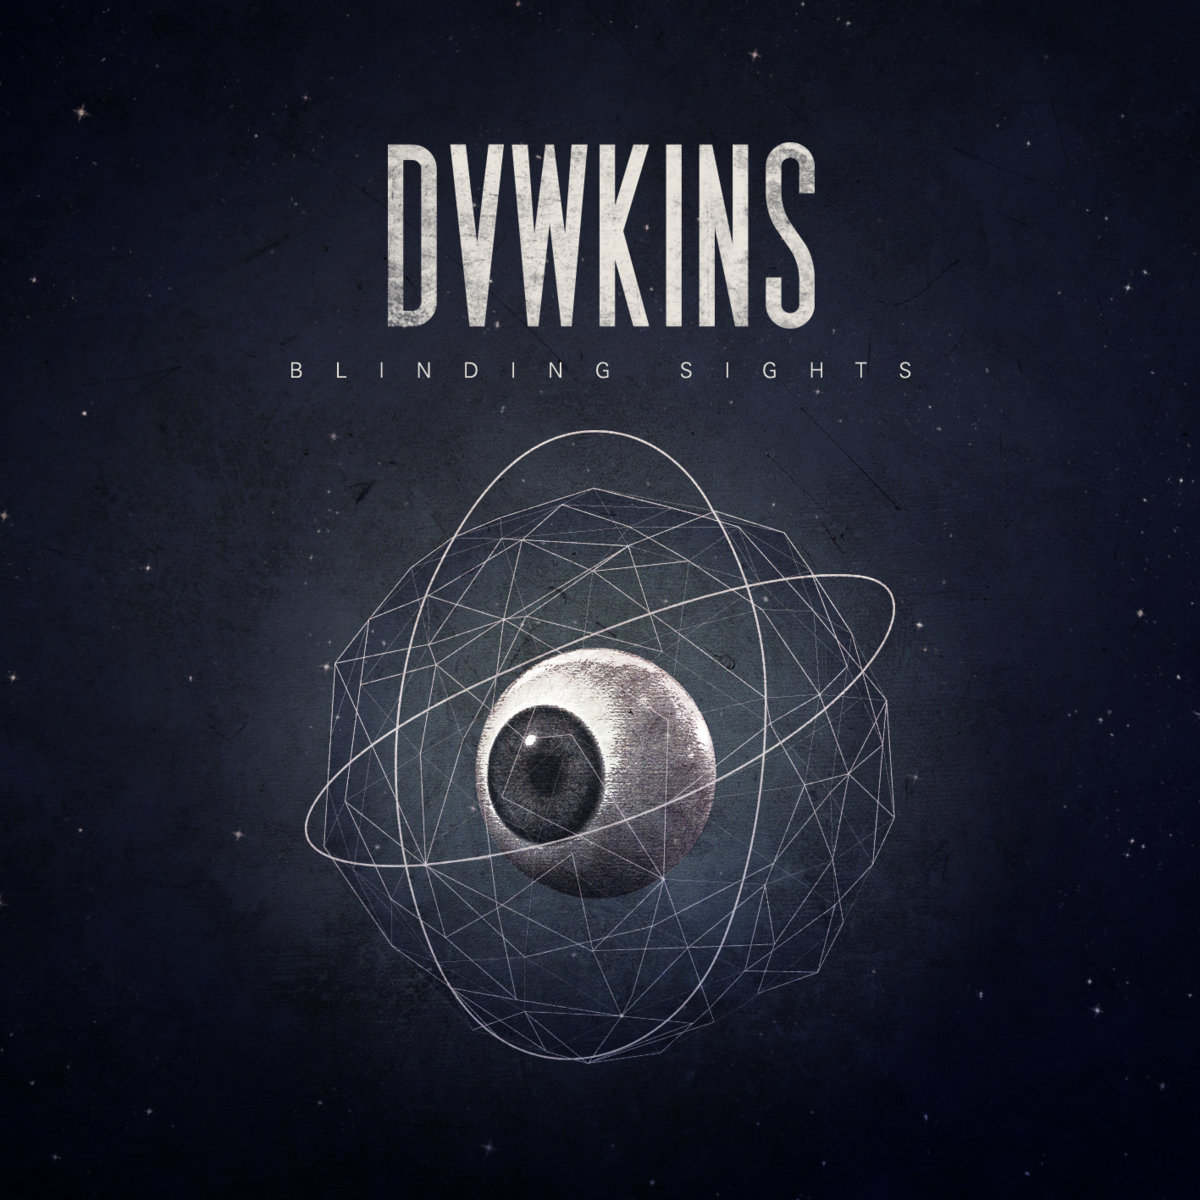 DVWKINS - The King is Dead [single] (2017)